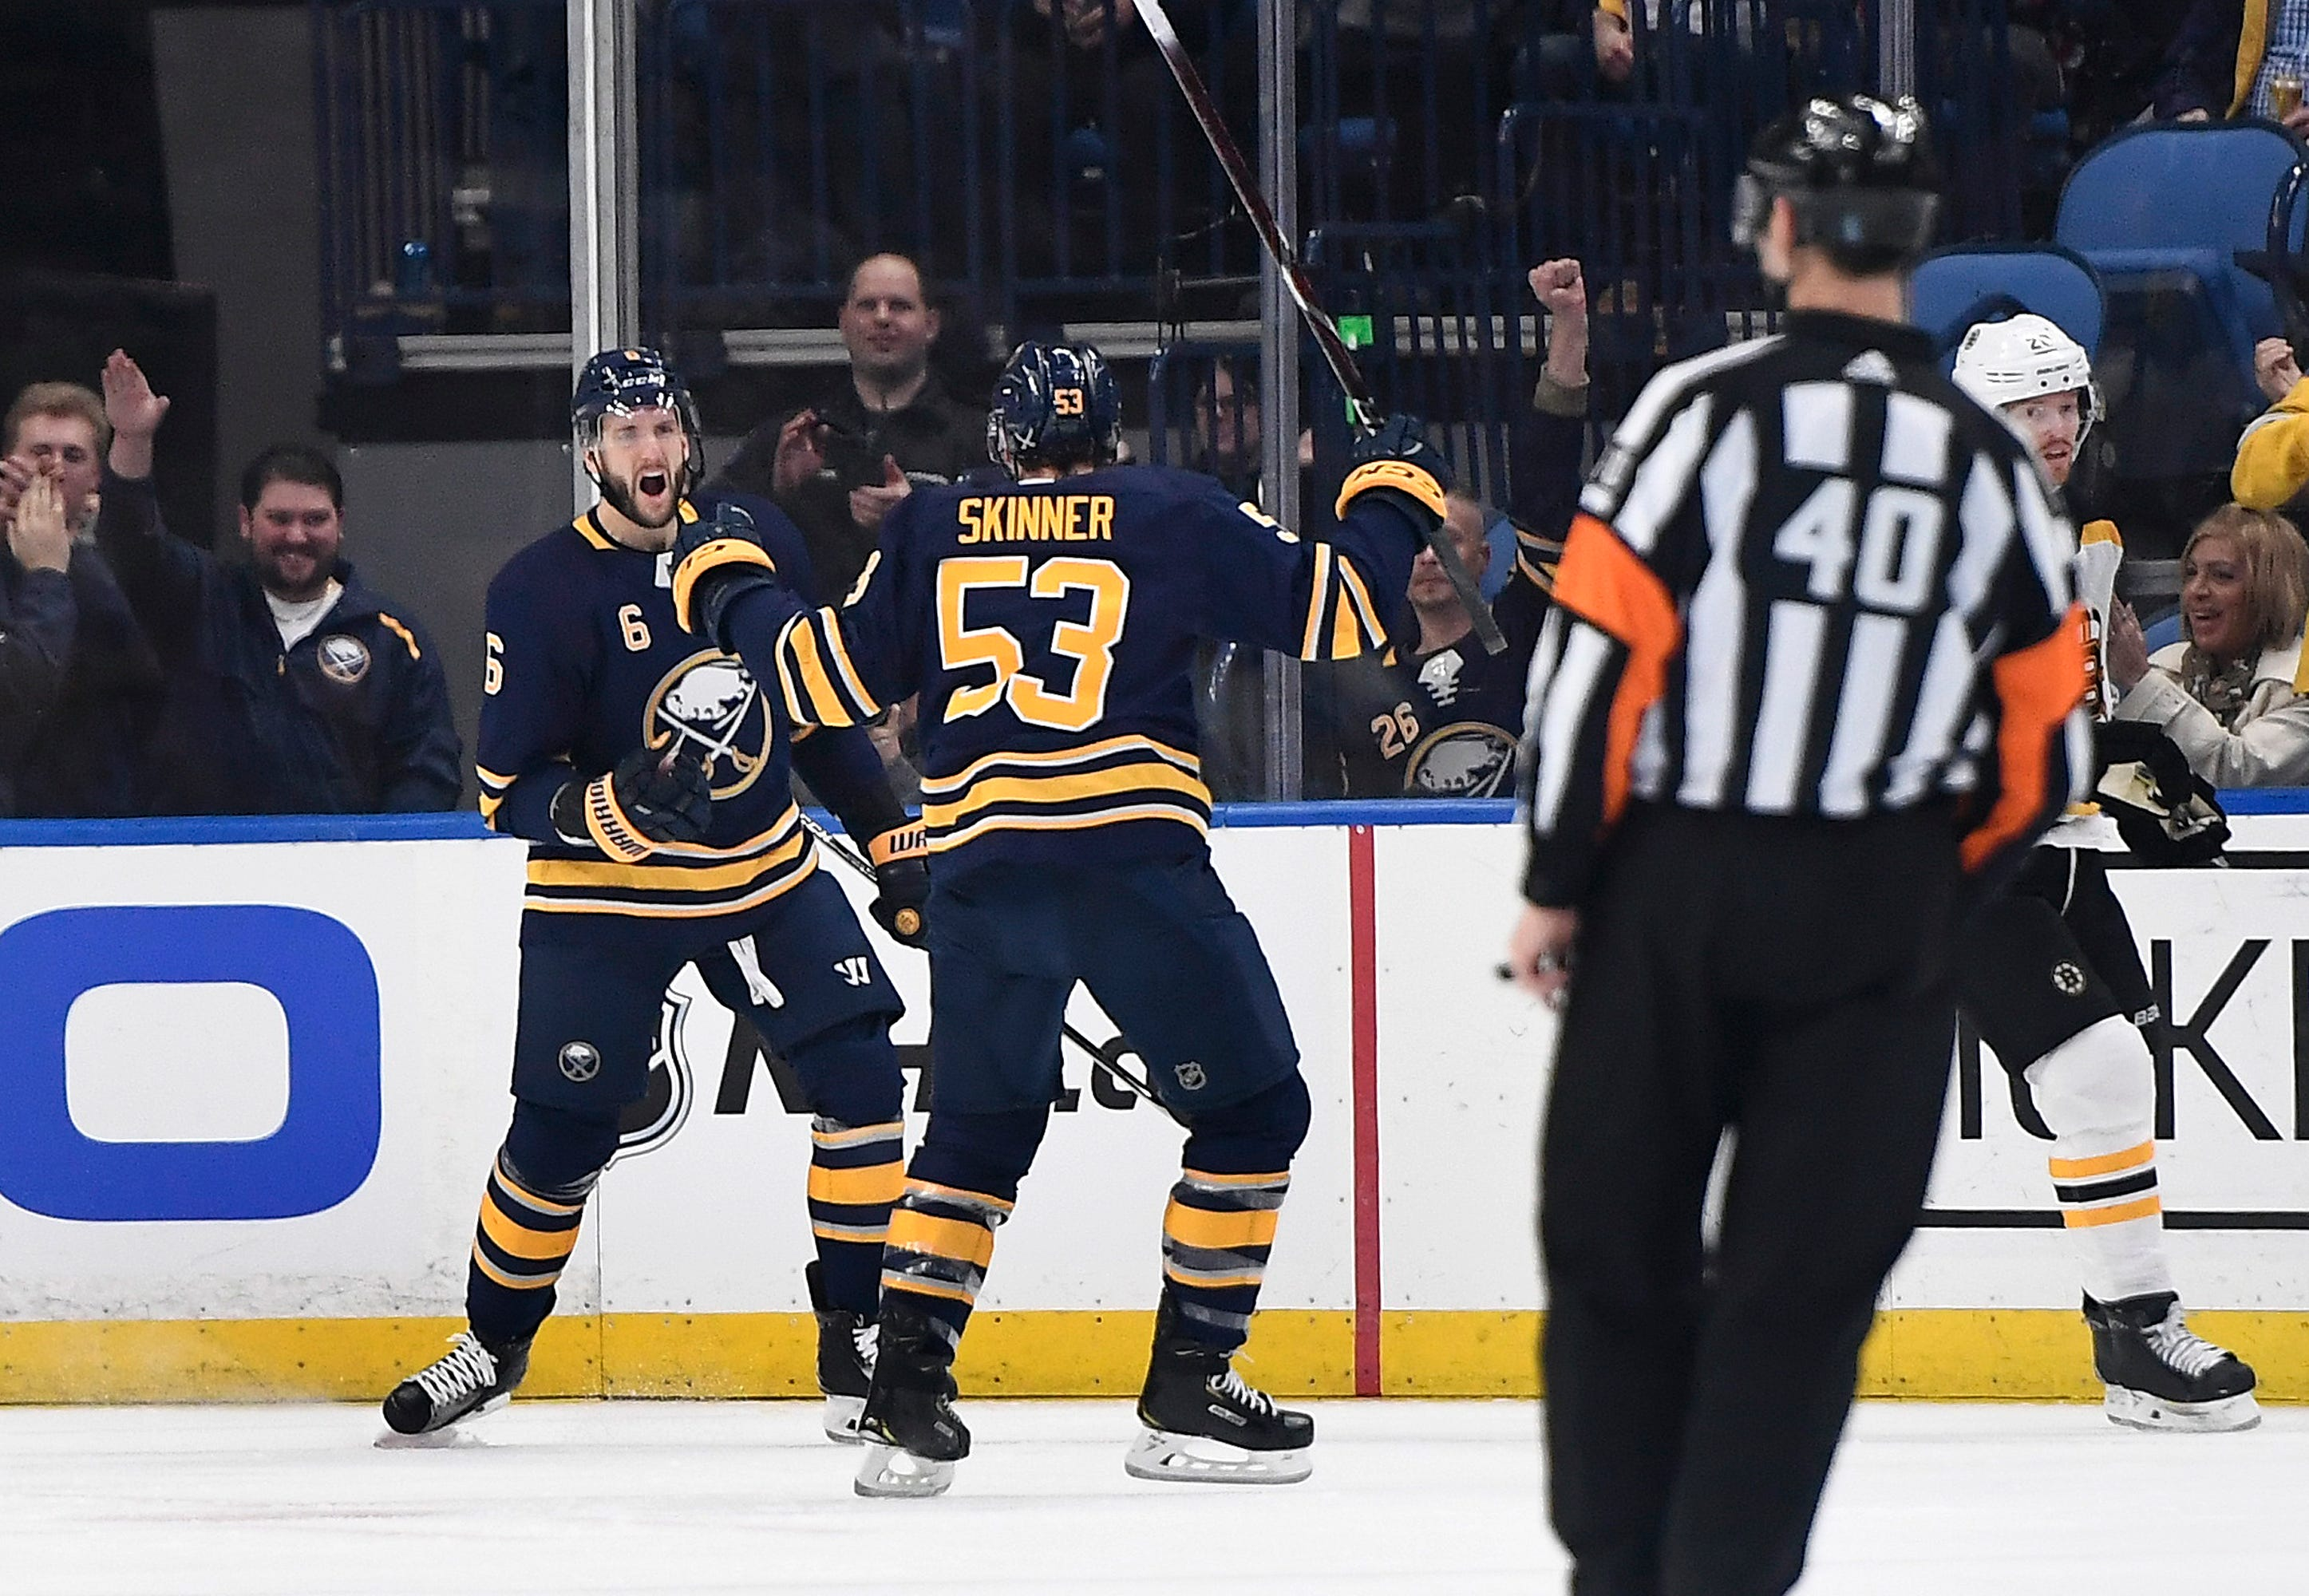 Kuraly scores in OT to give Bruins 3-2 win over Sabres